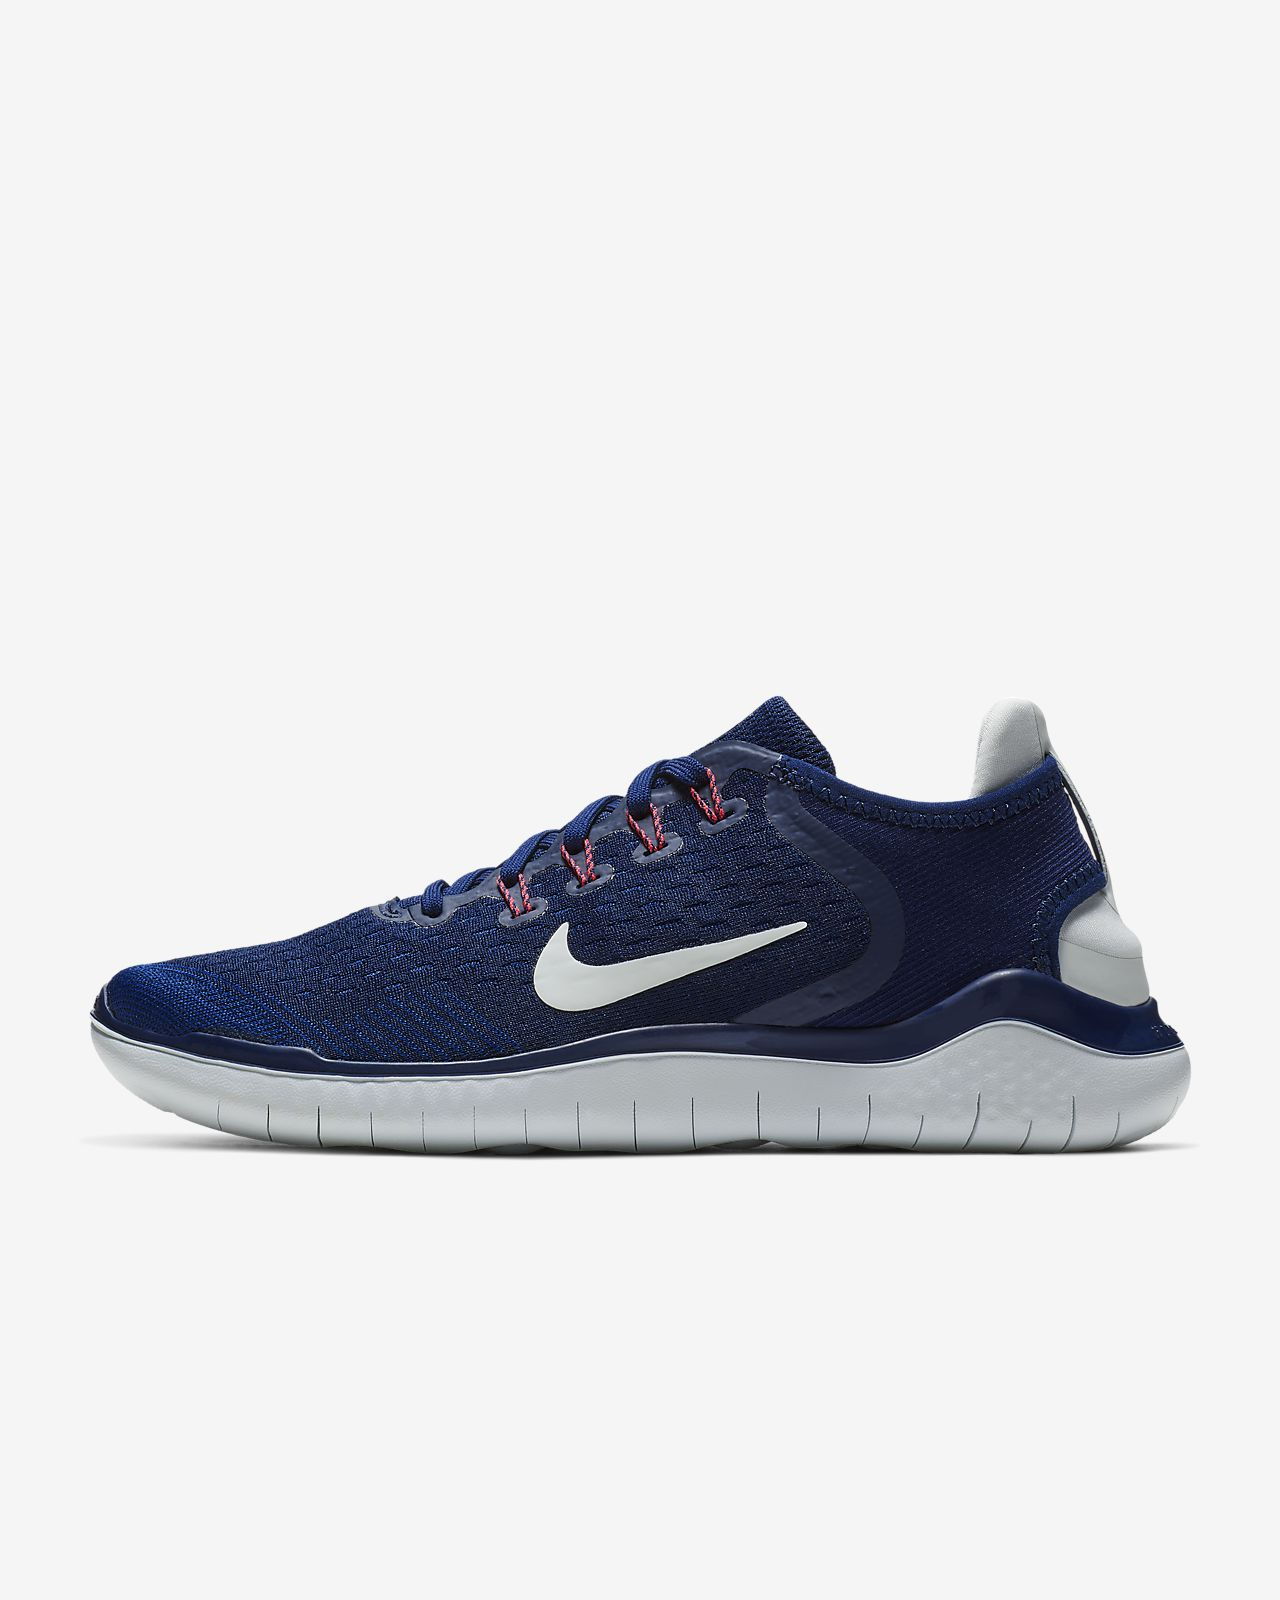 594fec5a3fa027 Low Resolution Nike Free RN 2018 Women s Running Shoe Nike Free RN 2018  Women s Running Shoe